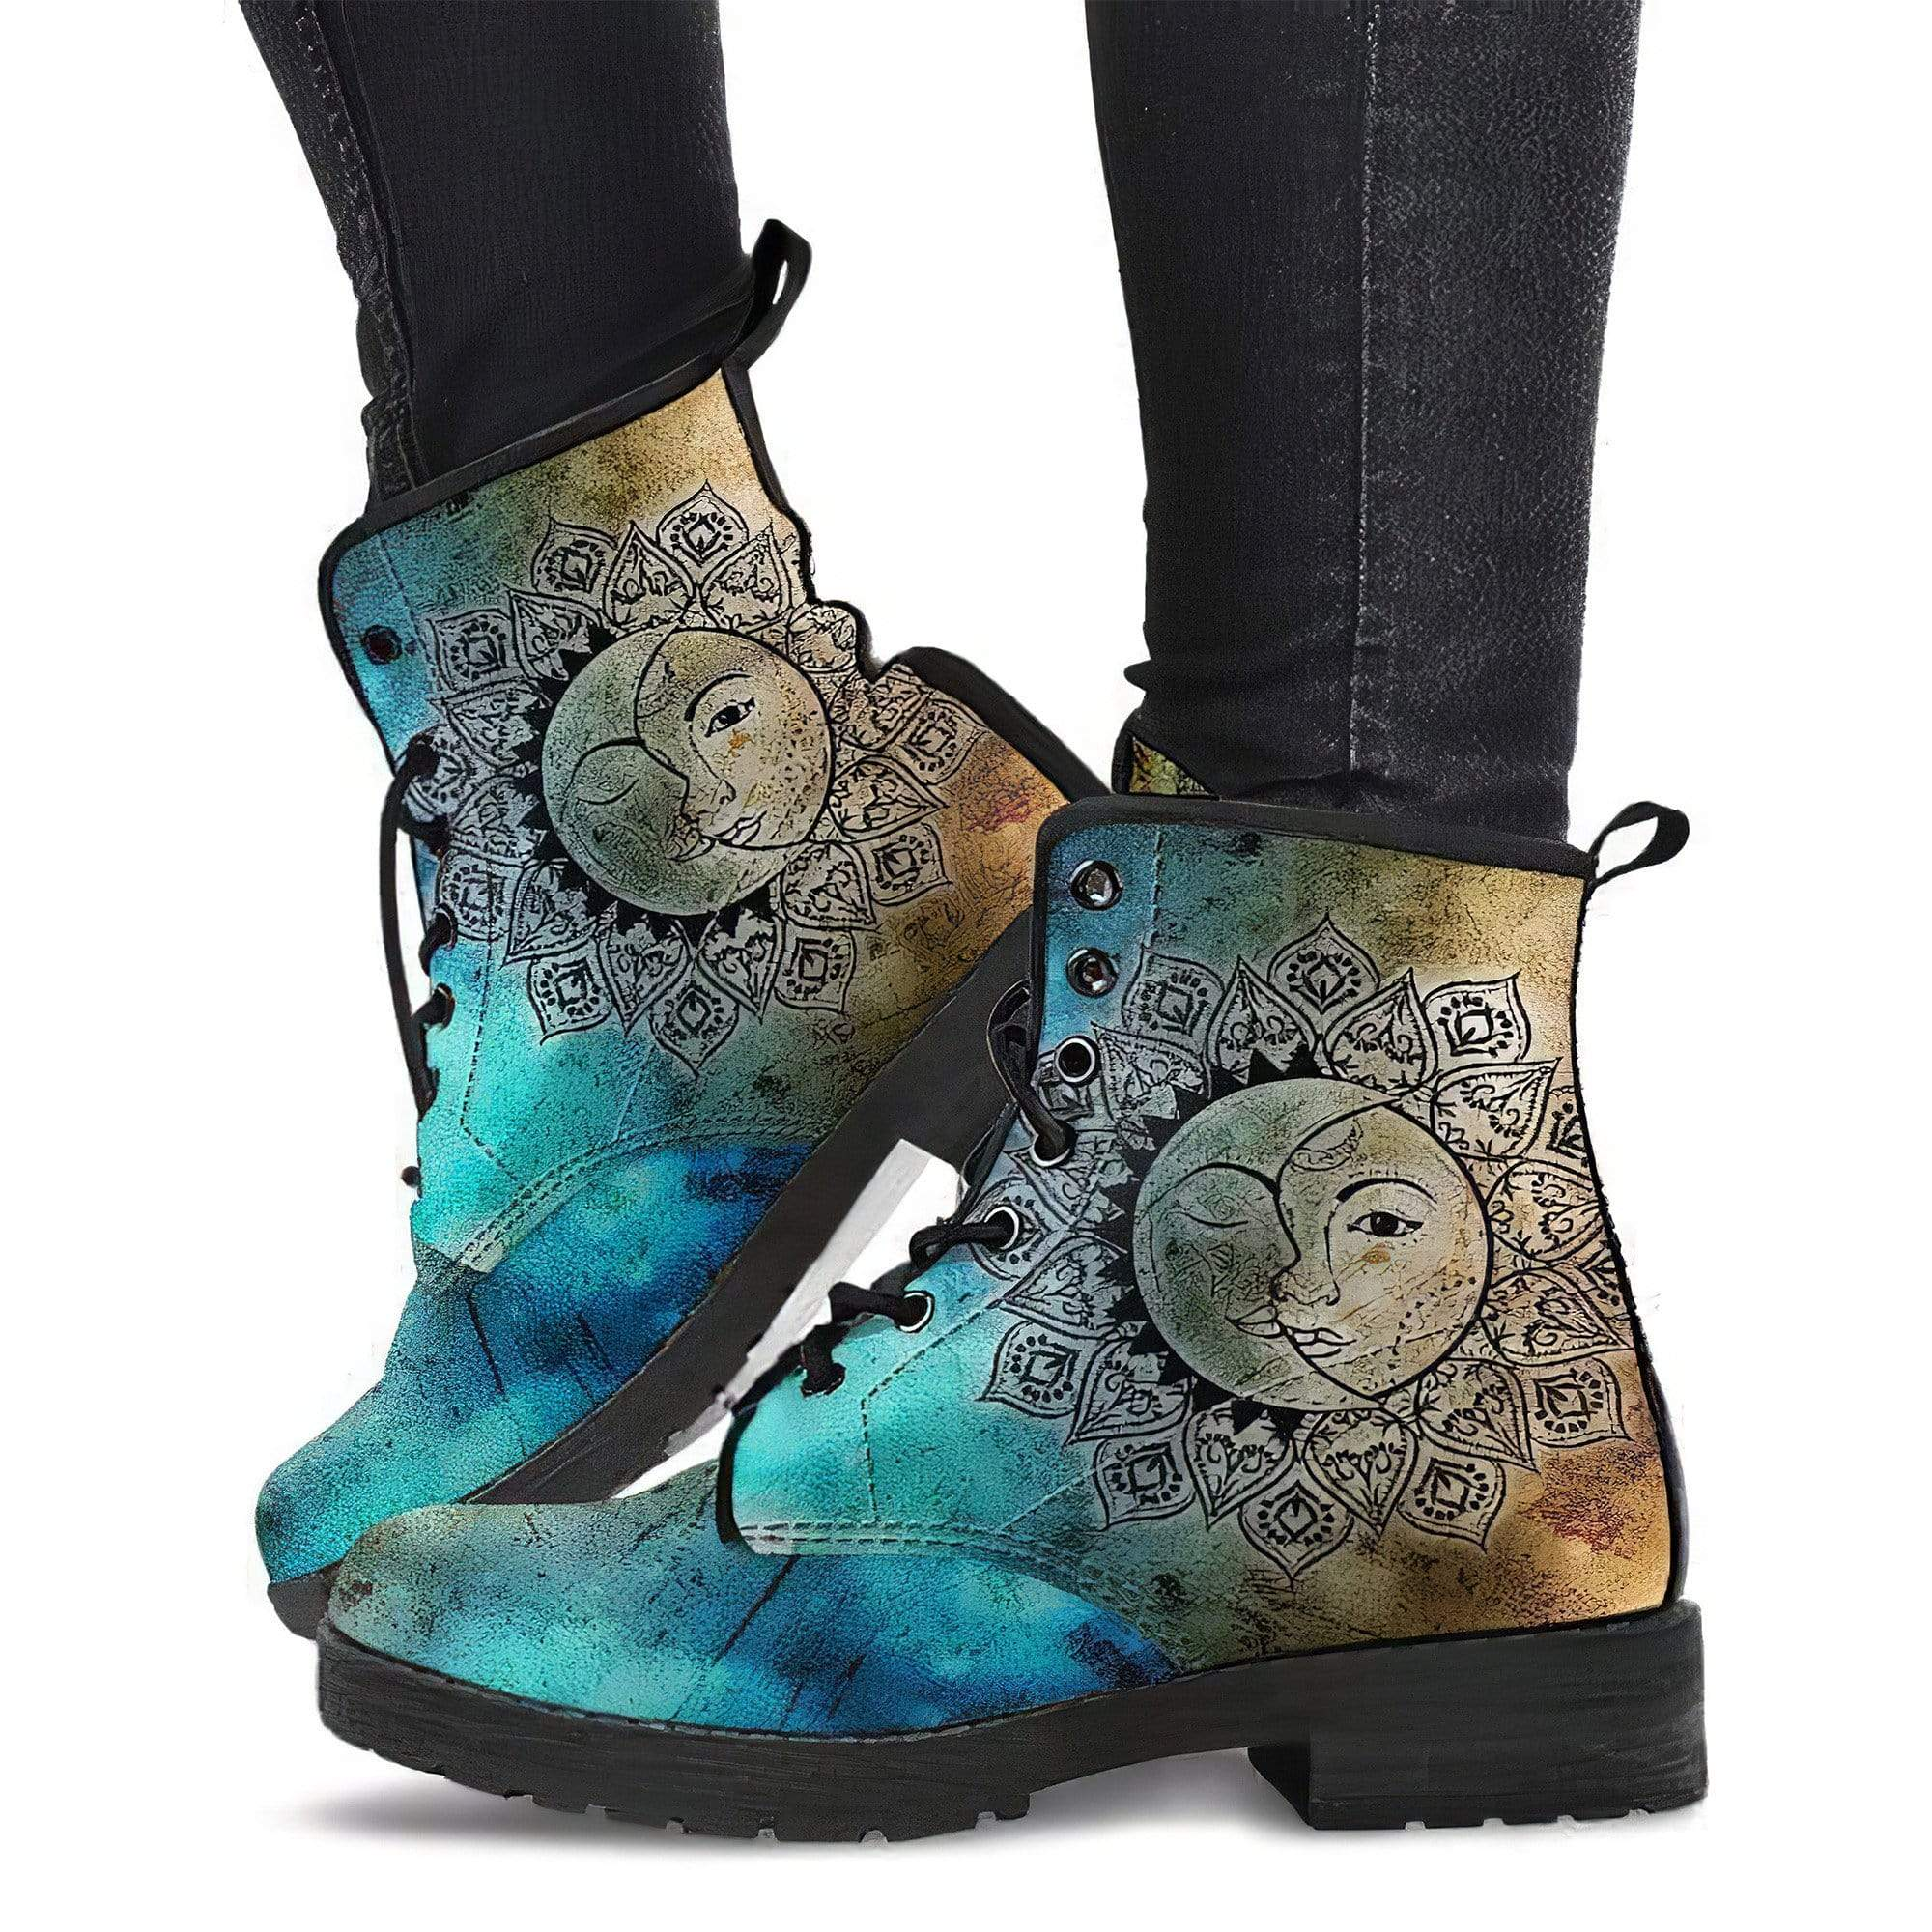 Sun Moon 3 Women's Boots Vegan Friendly Leather Women's Leather Boots